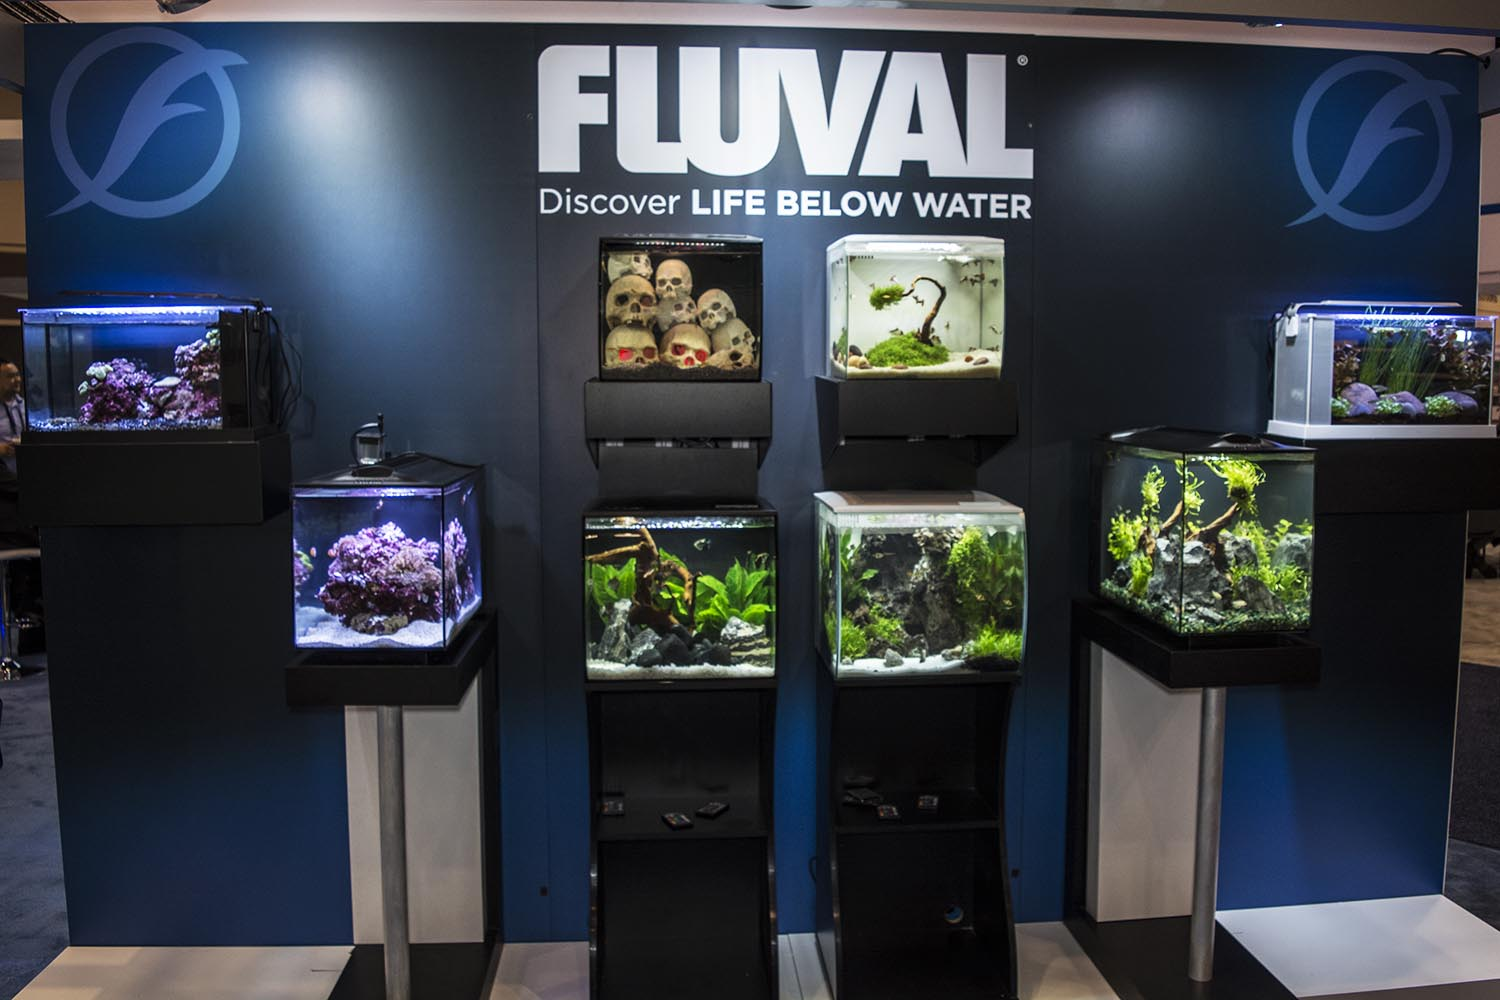 A great looking nano aquarium display from Fluval Aquatics, highlighting their new Flex line and a taller, 16-gallon Evo